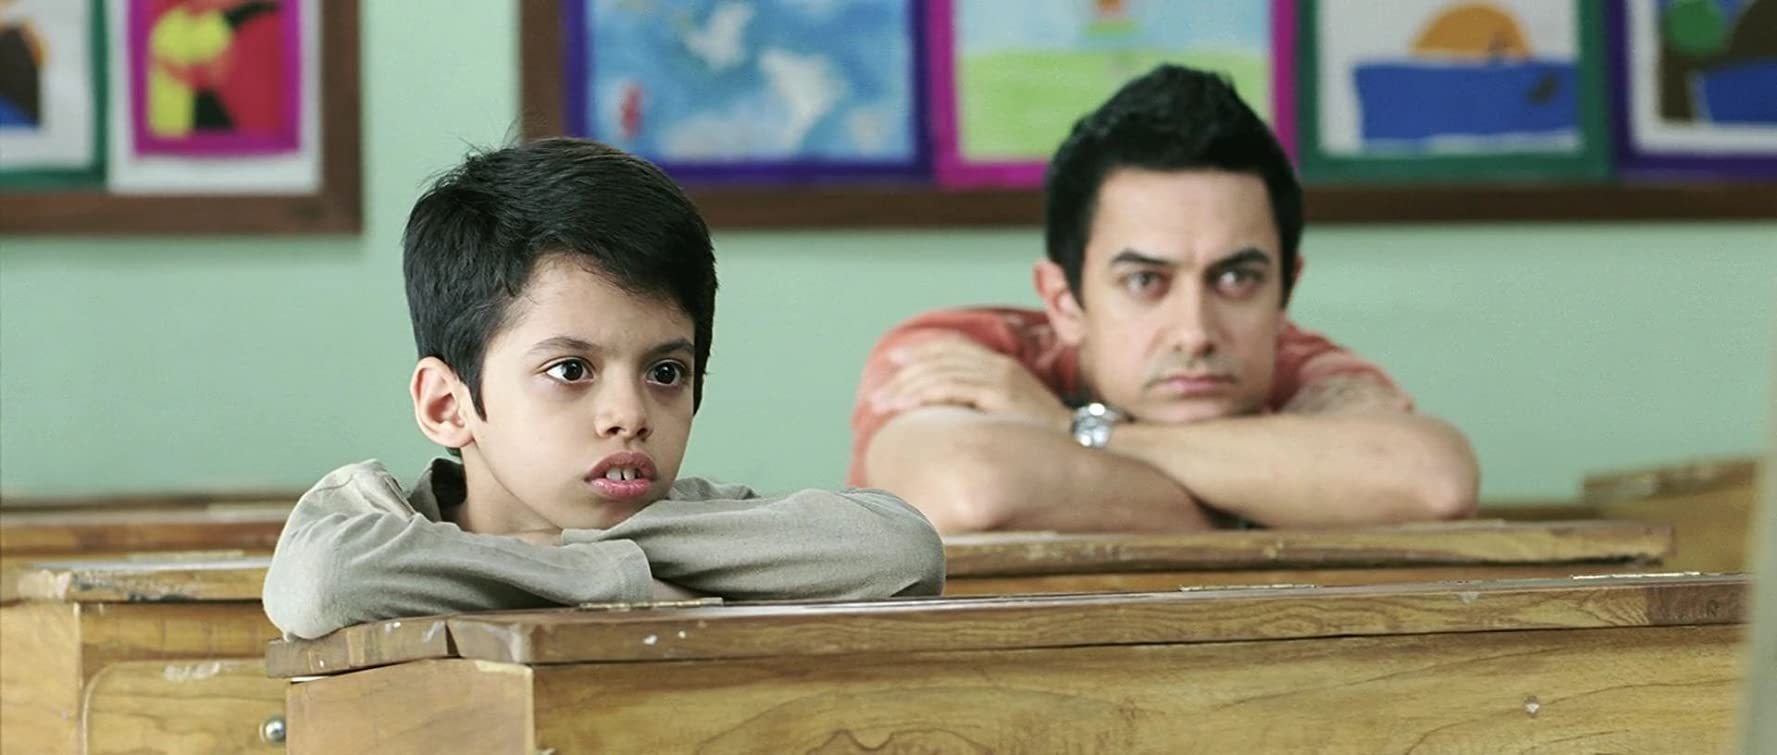 Taare Zameen Par / Like Stars on Earth (2007)